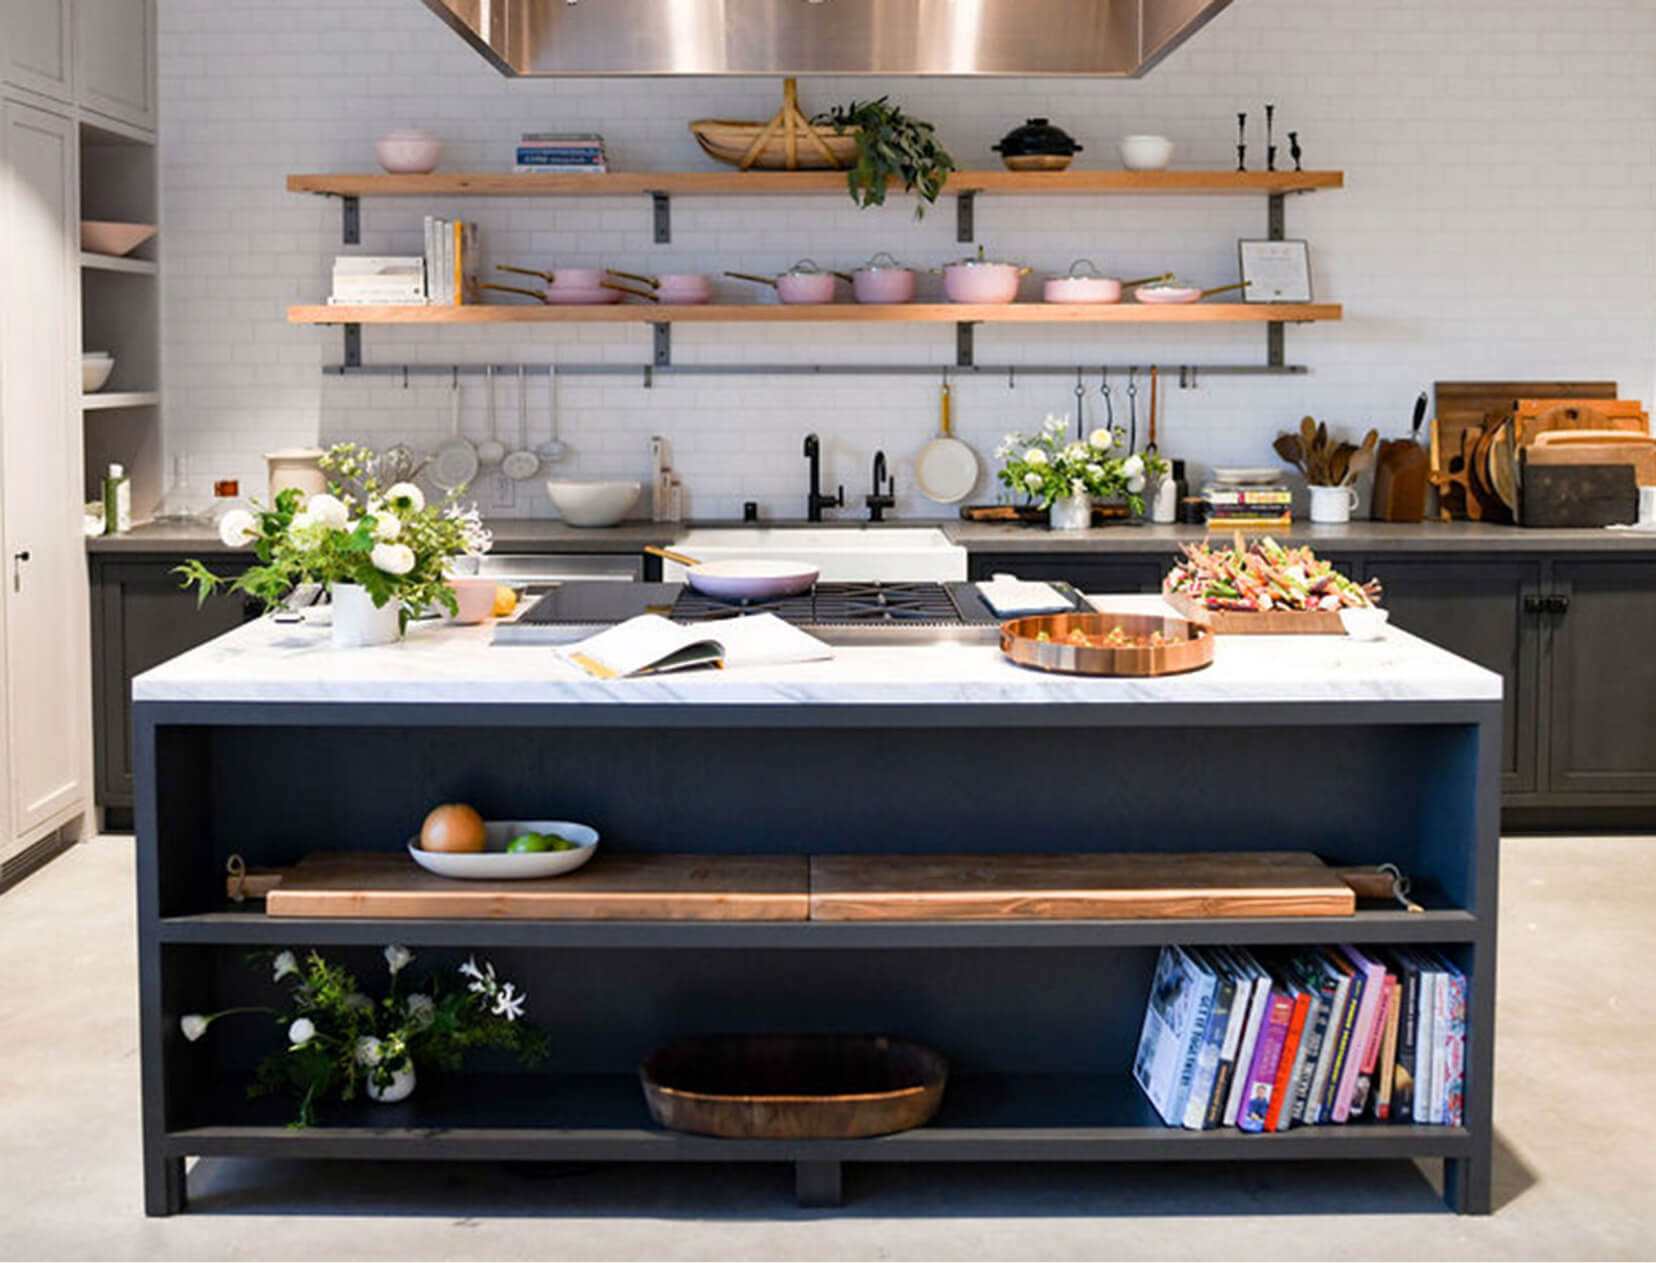 How We Re Stocking Our Brand New Kitchen For The Holidays Goop